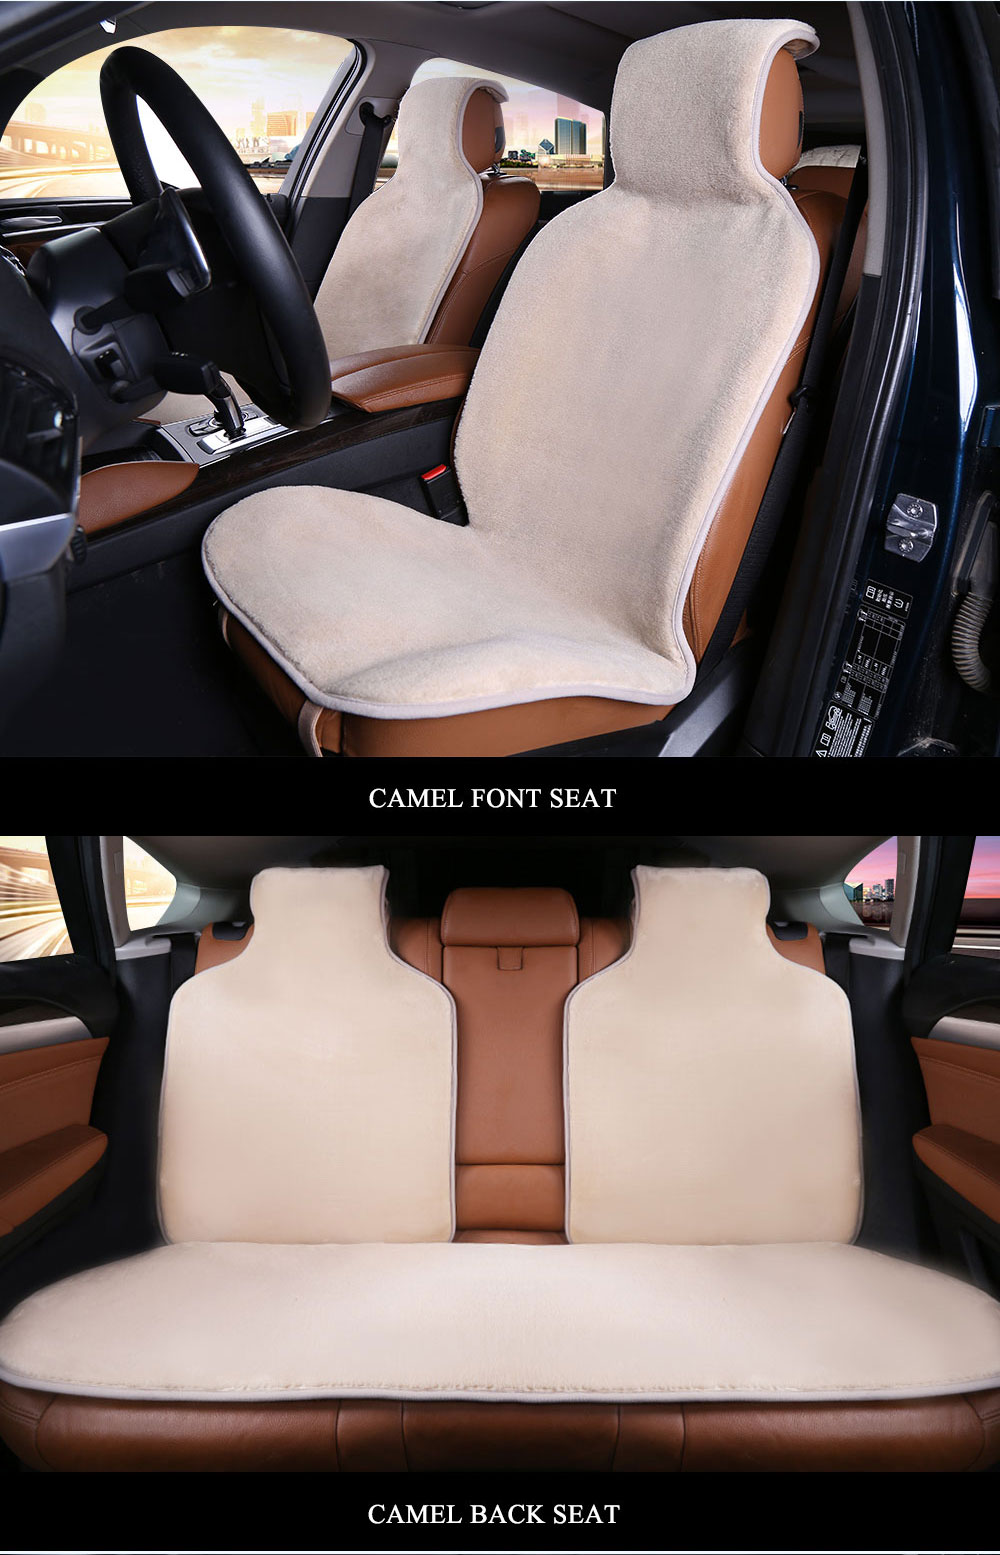 faux fur car seat covers universal siz for all types of seats Full Cover Set 7color seat cover.car cover seat for toyota auris